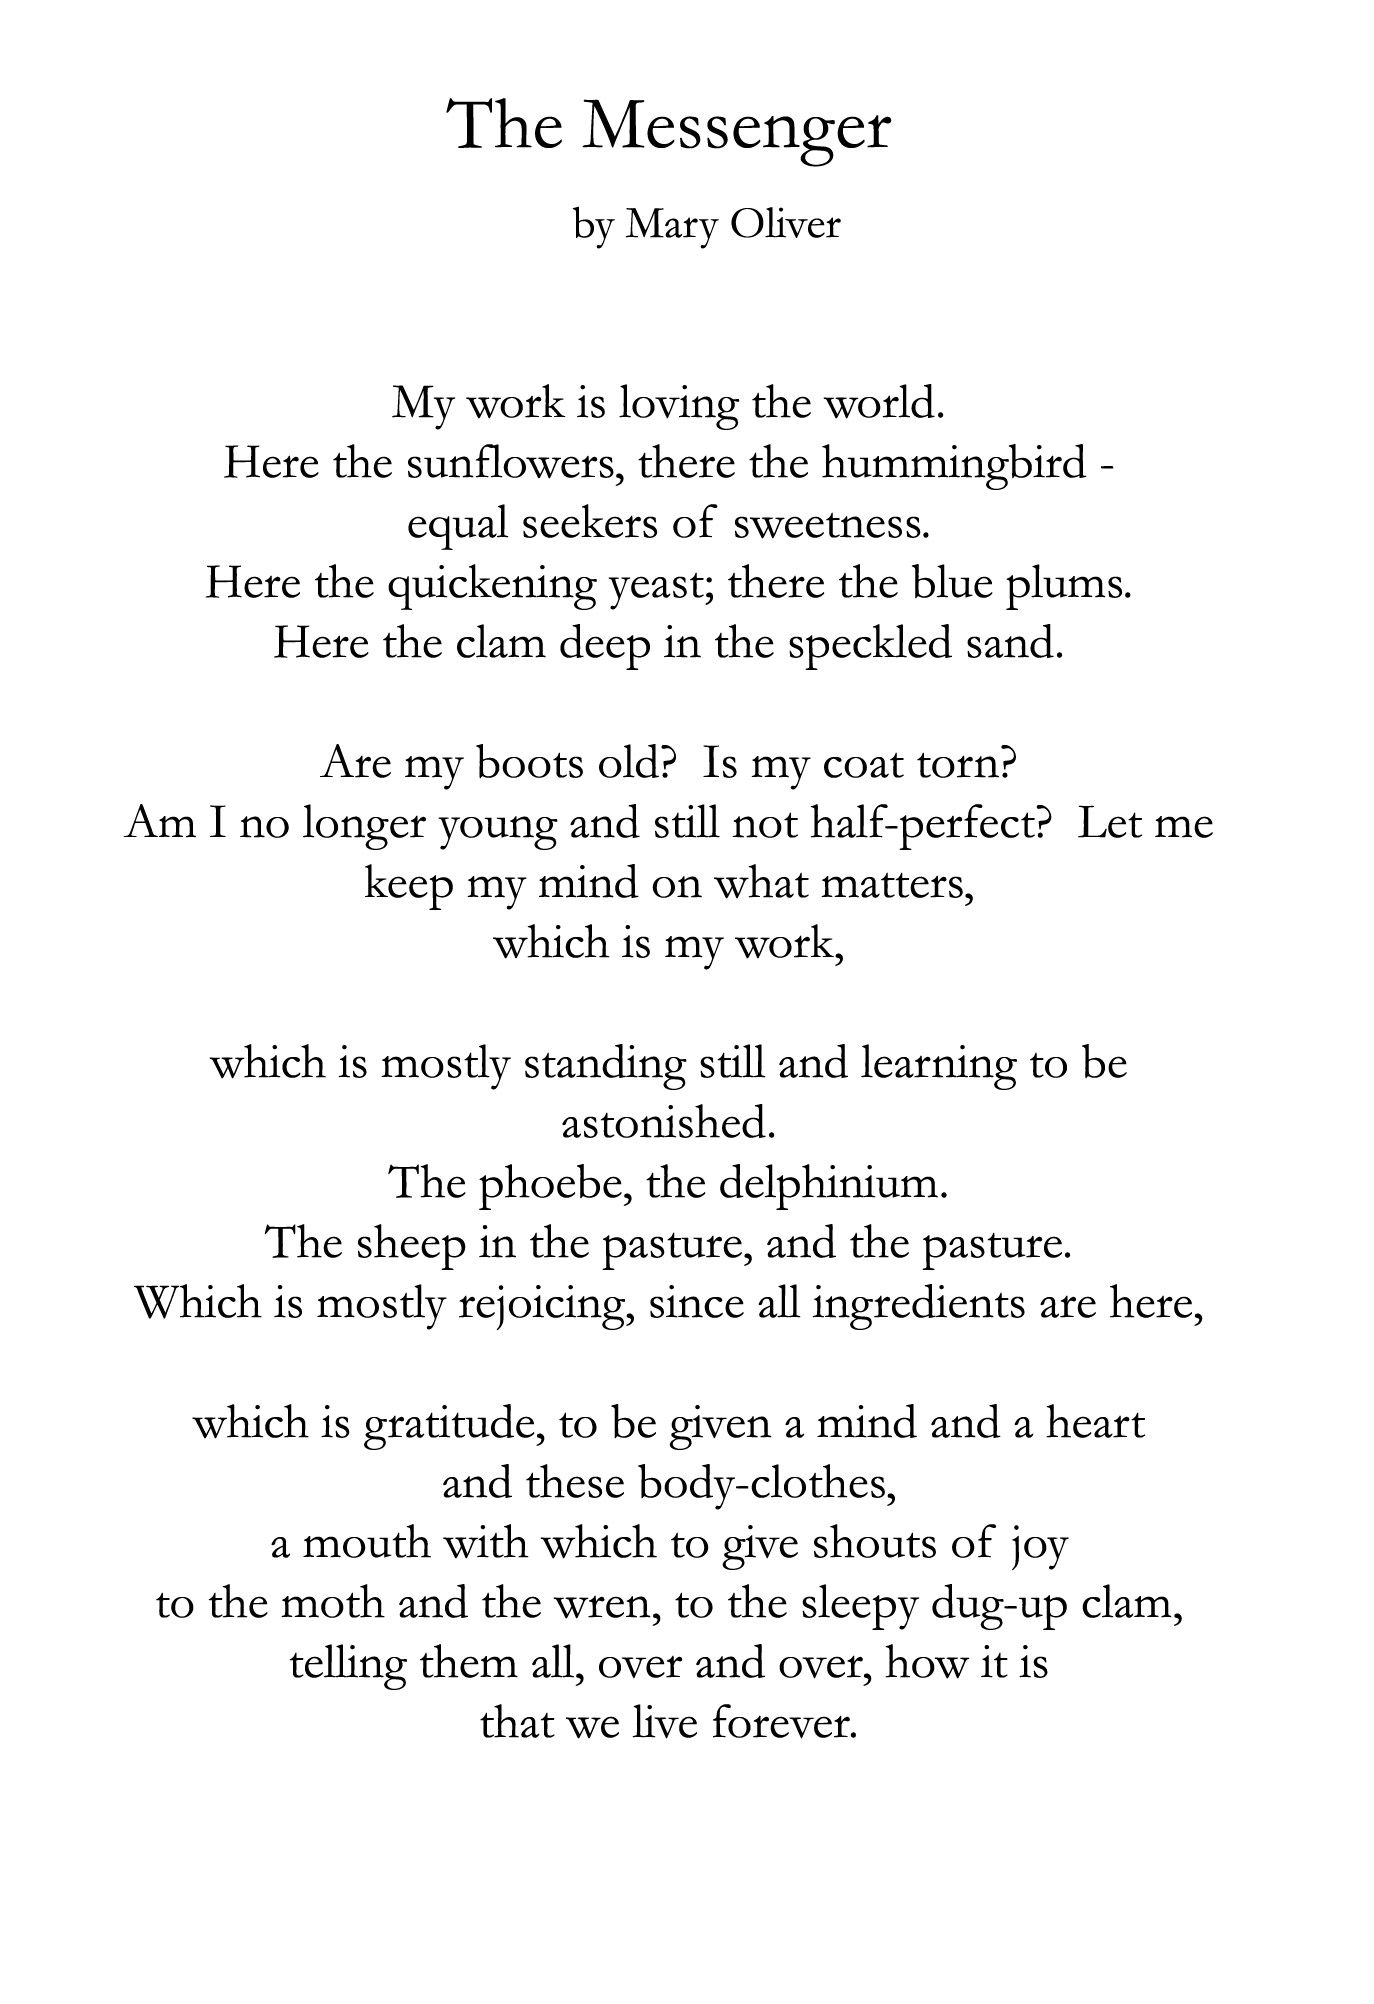 The Messenger ~ Mary Oliver Mary Oliver (born September 10, 1935) is an  American poet who has won the National Book Award and the Pulitzer Prize.